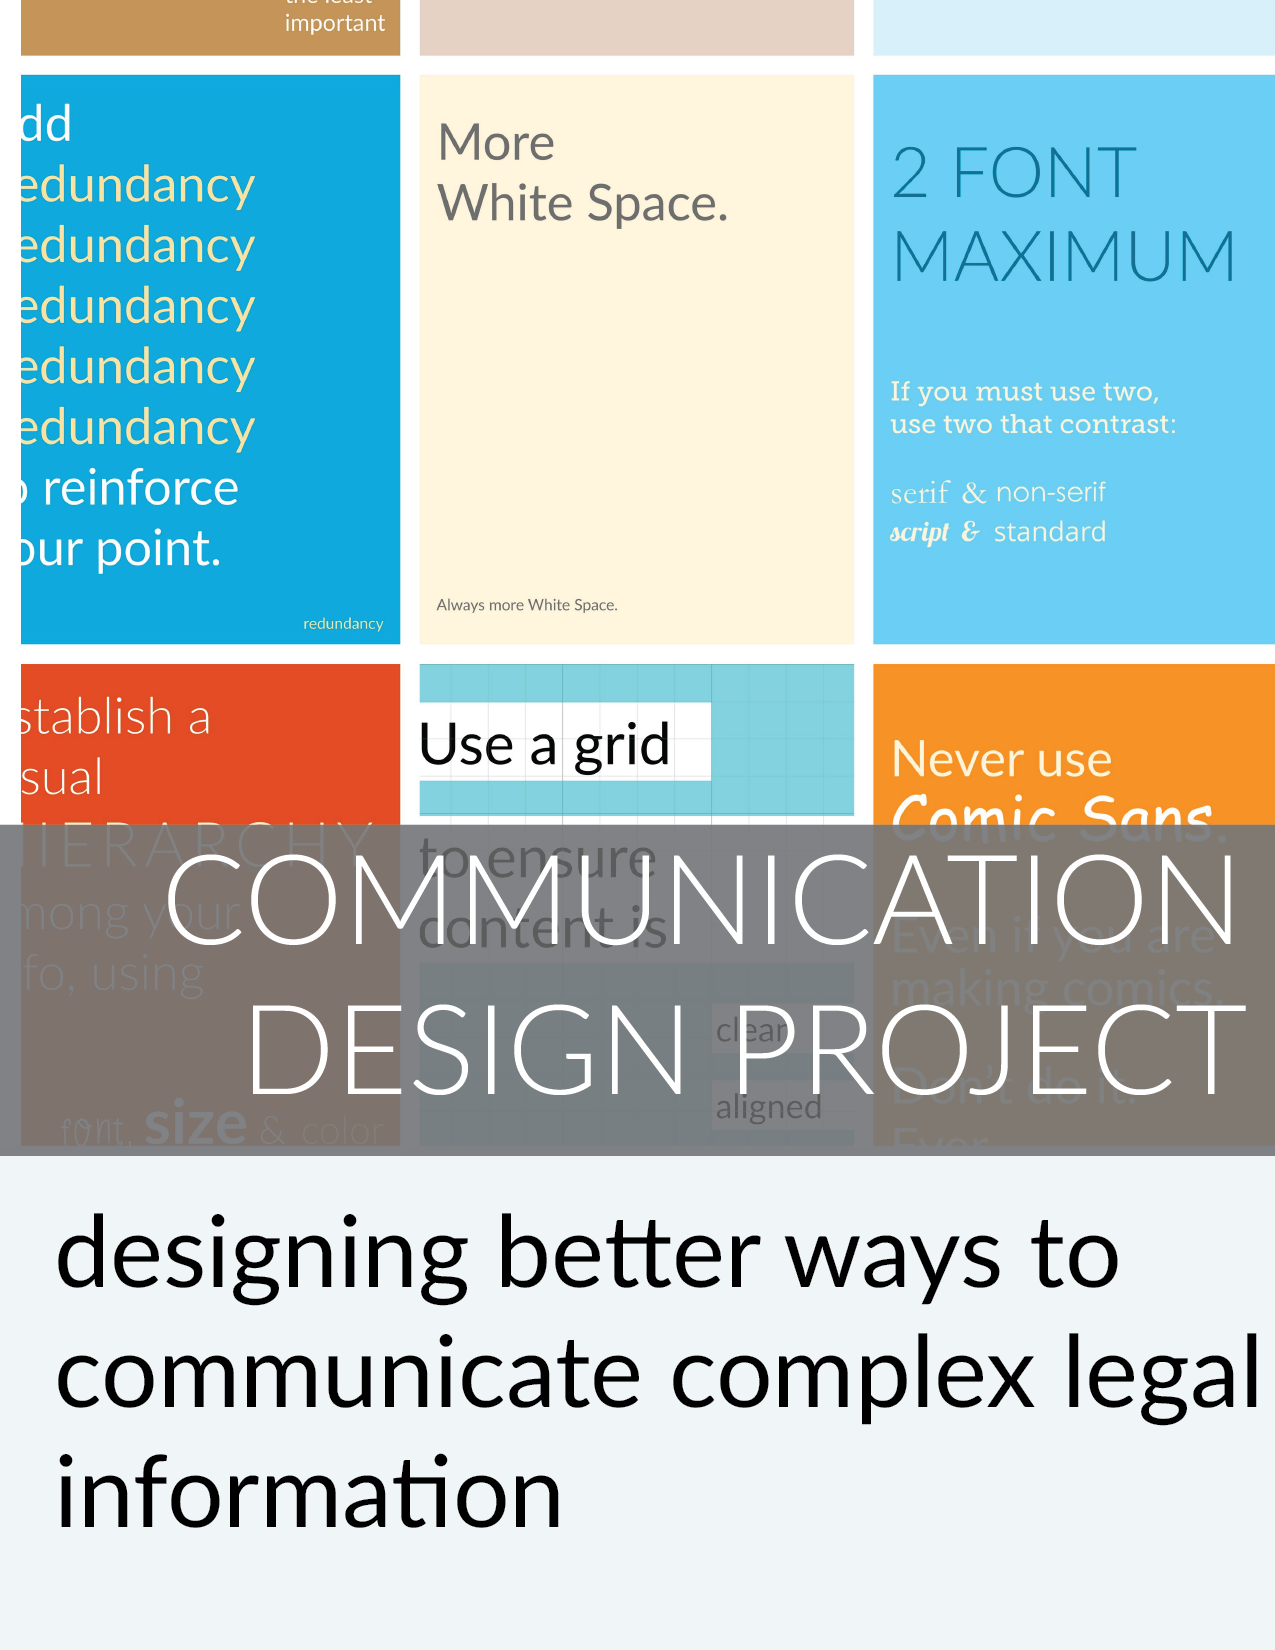 Legal Communication Design